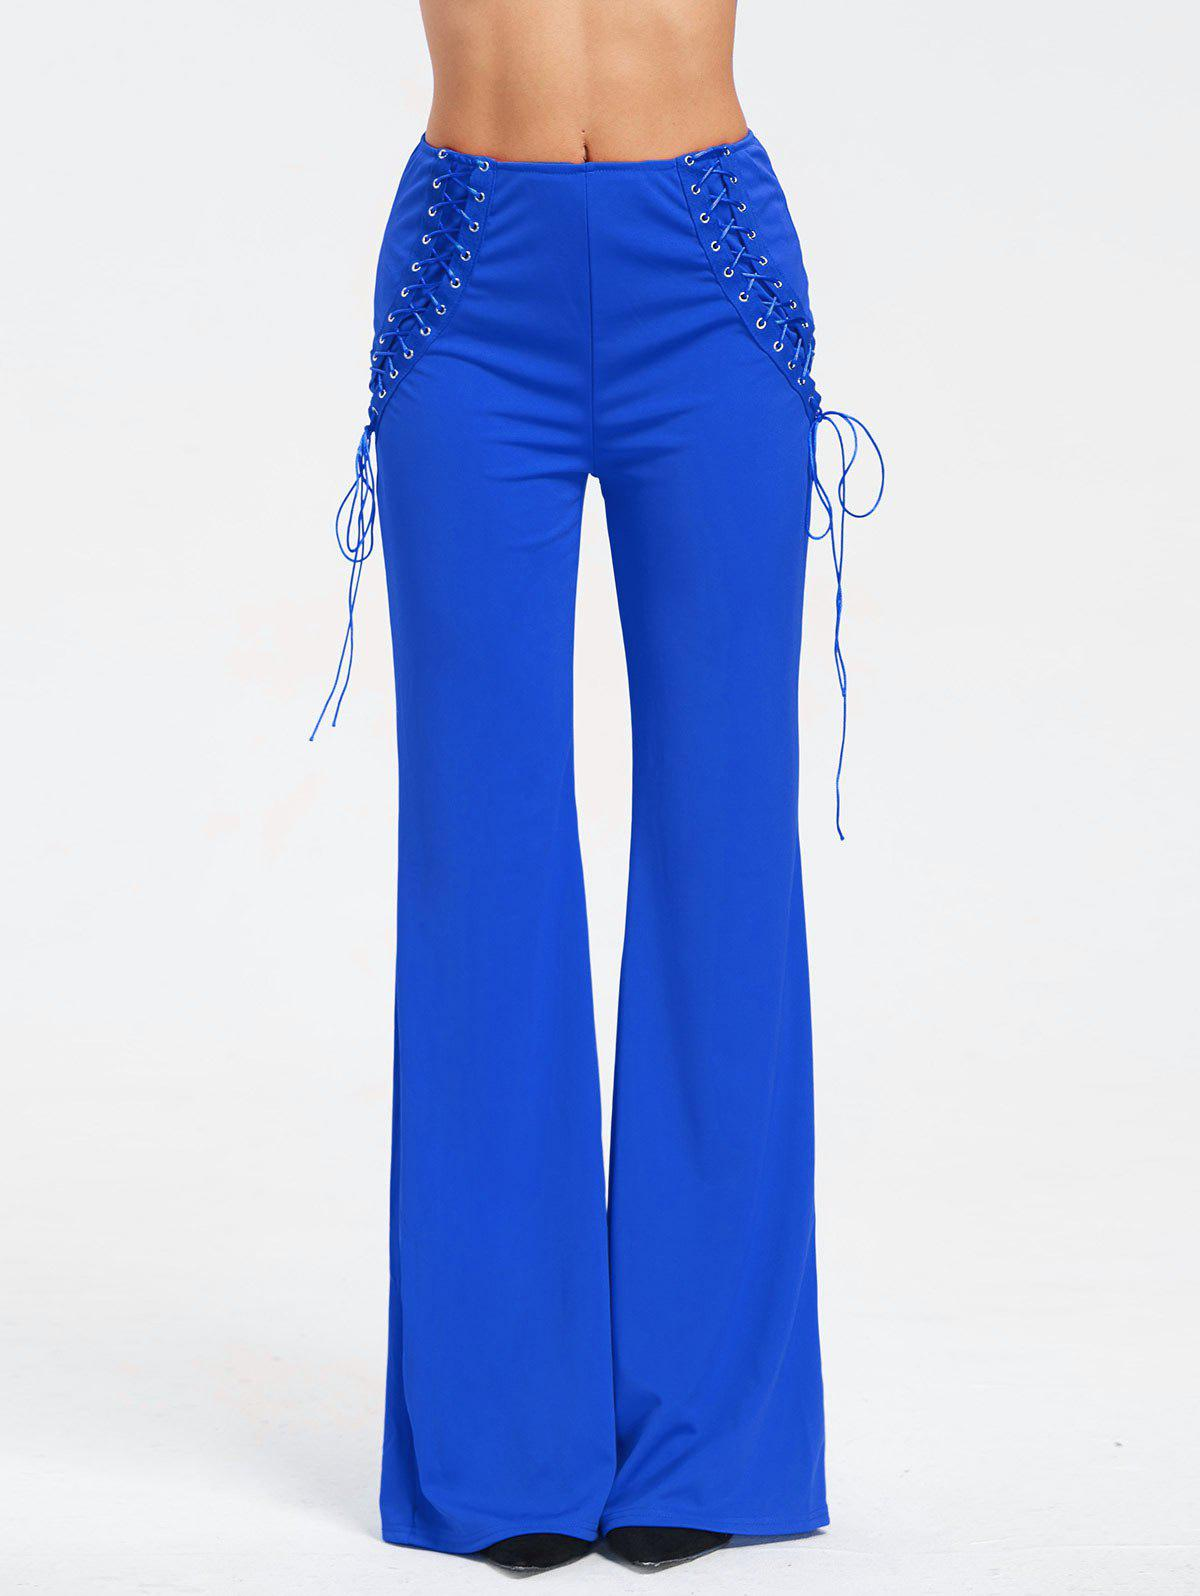 High Waist Criss Cross Lace Up Flare Pants - ROYAL XL